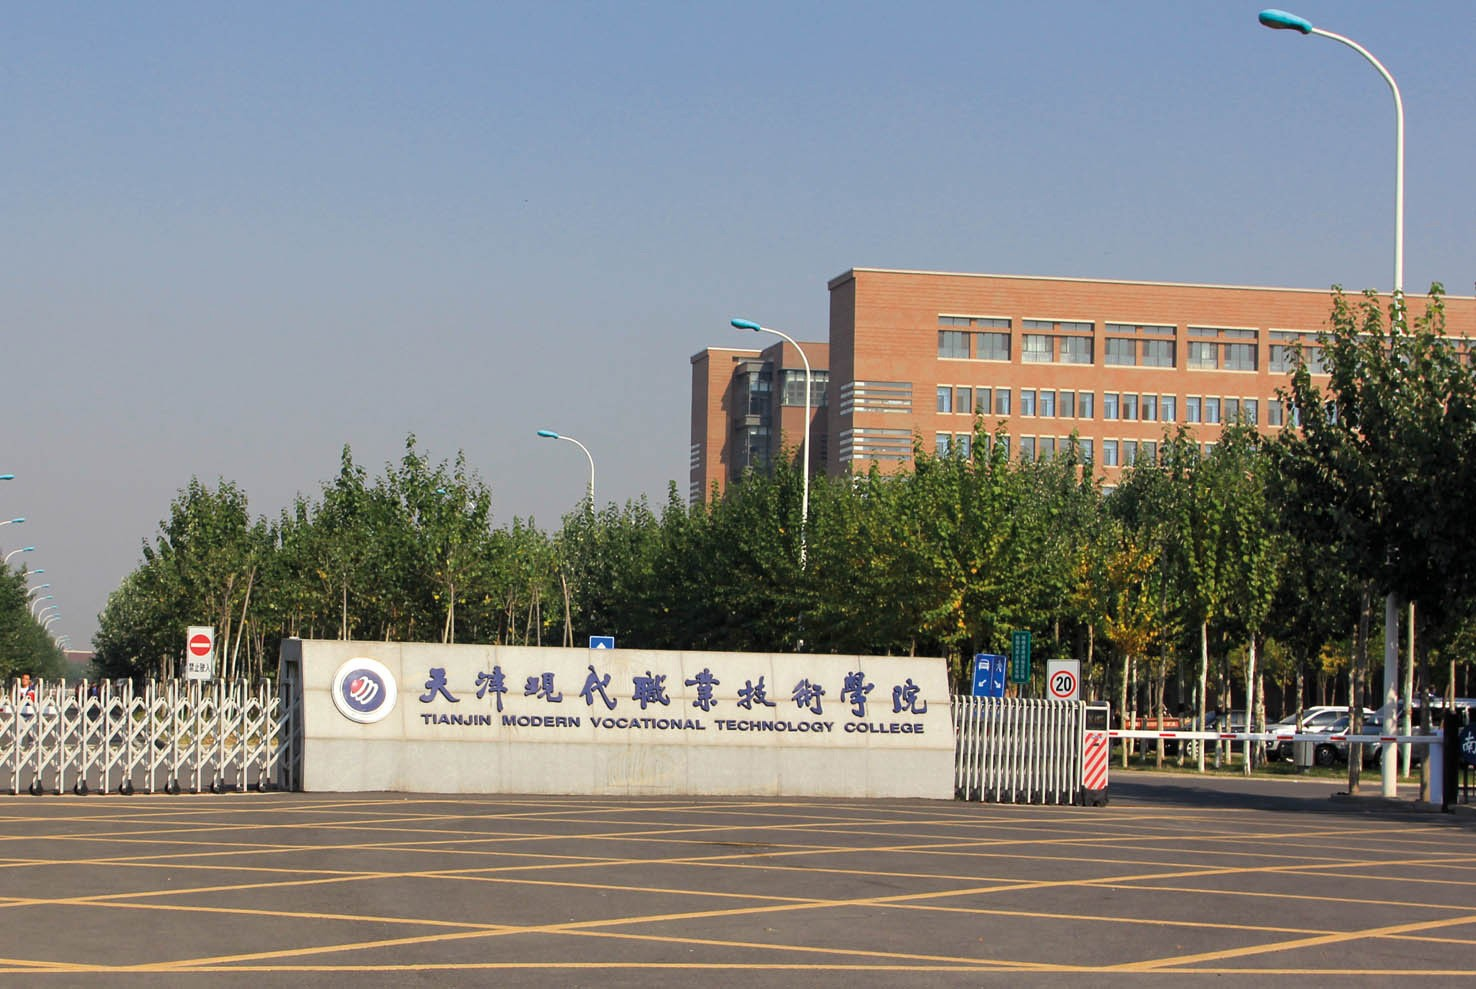 Tianjin Modern Vocational Technology College (6)